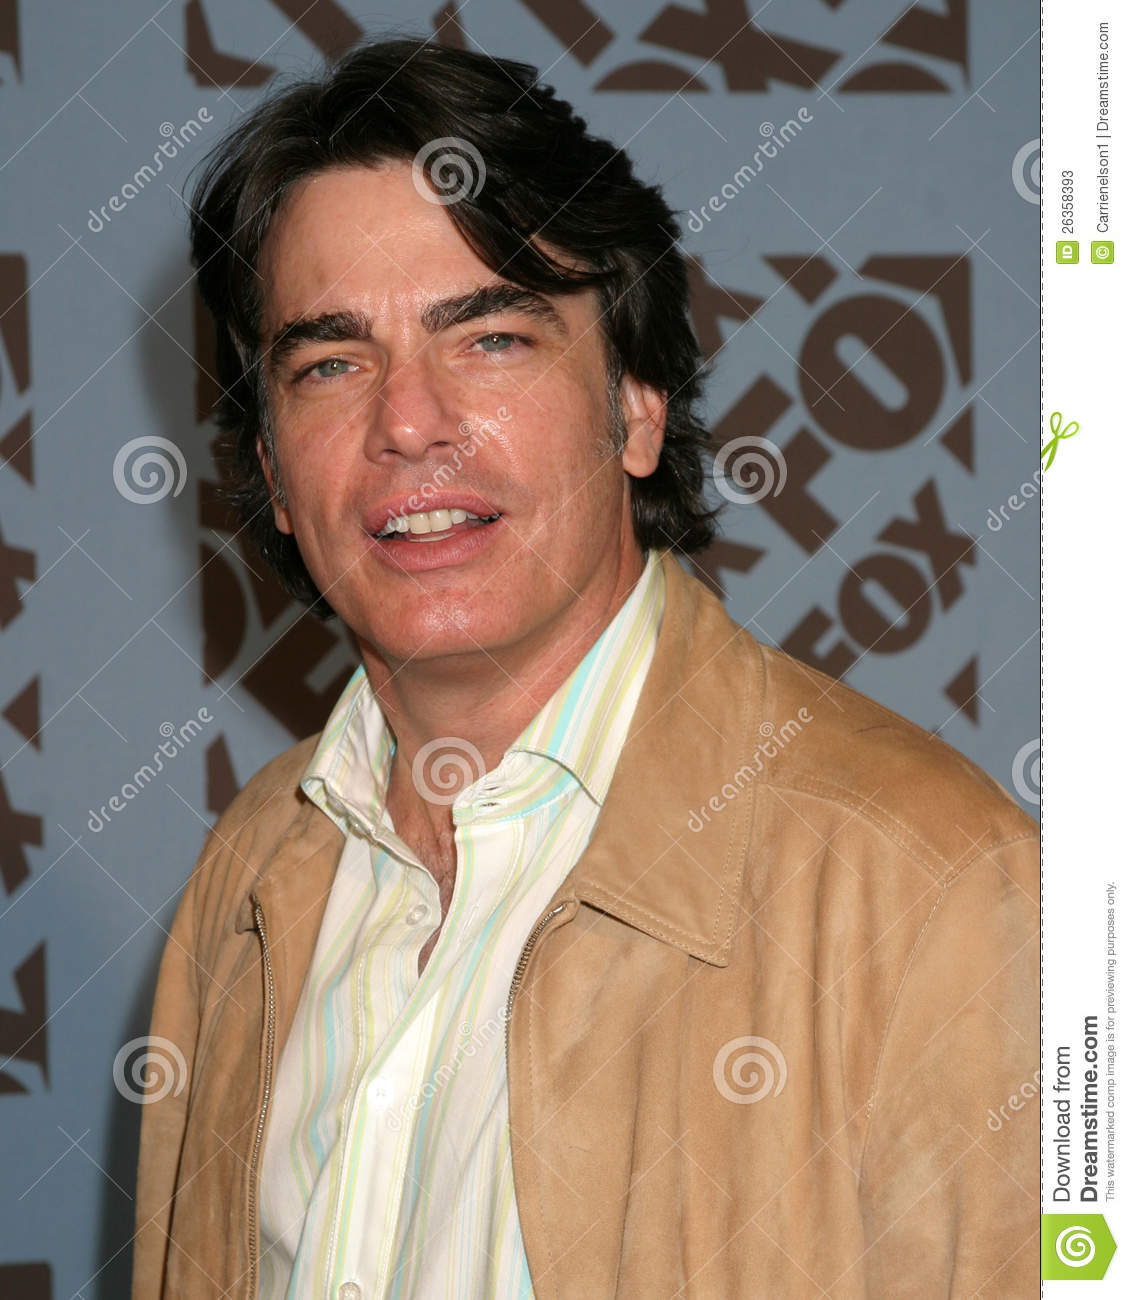 peter gallagher eyebrows